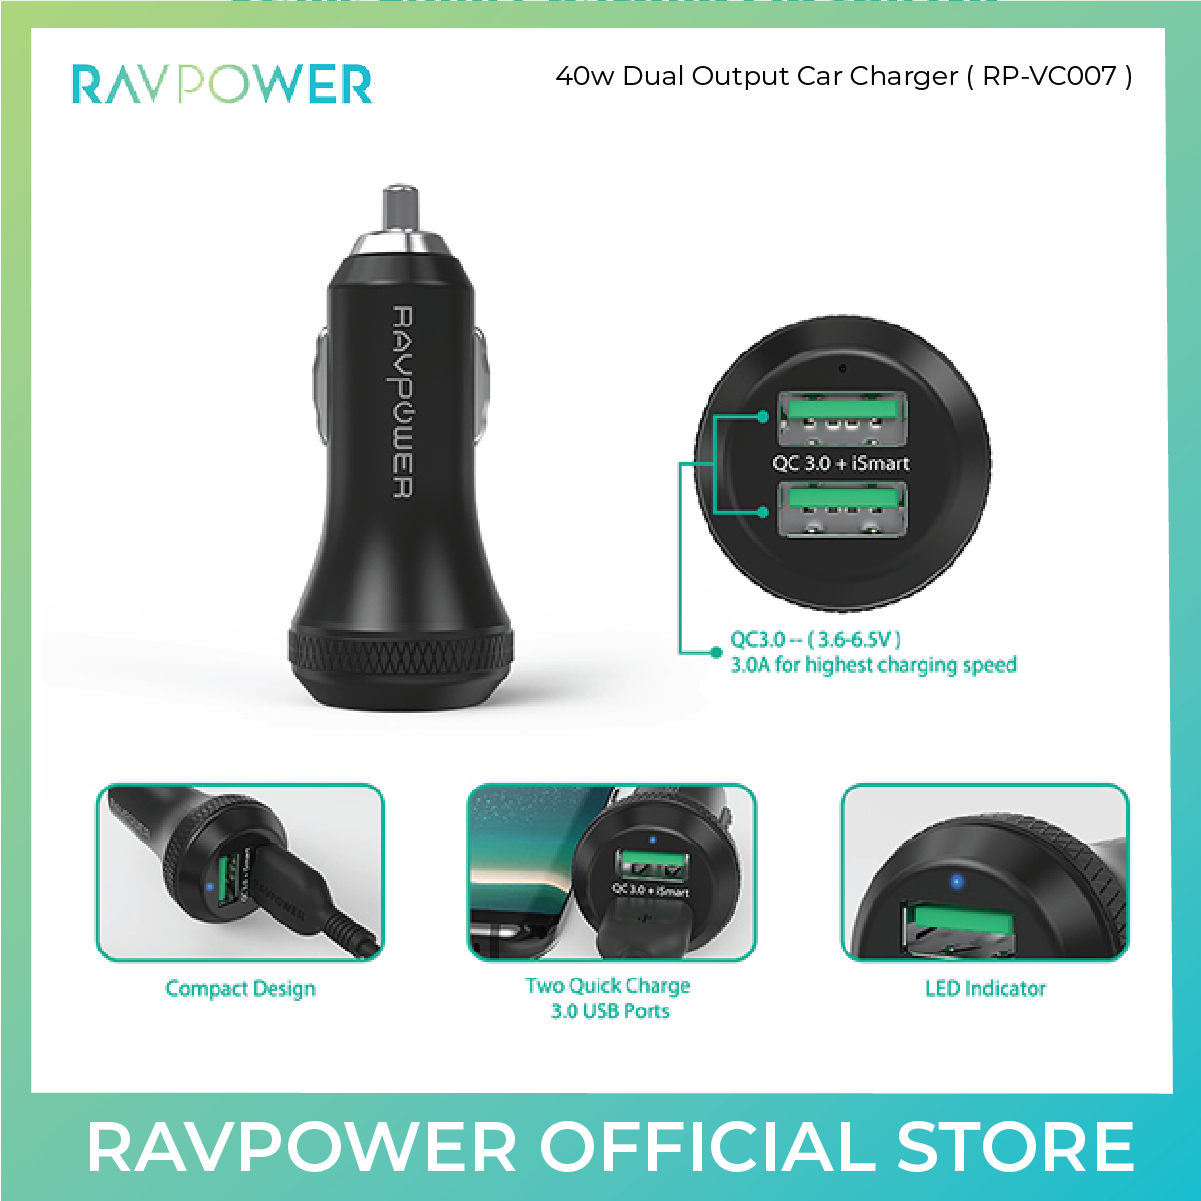 RAVPower 40w Dual Output Car Charger